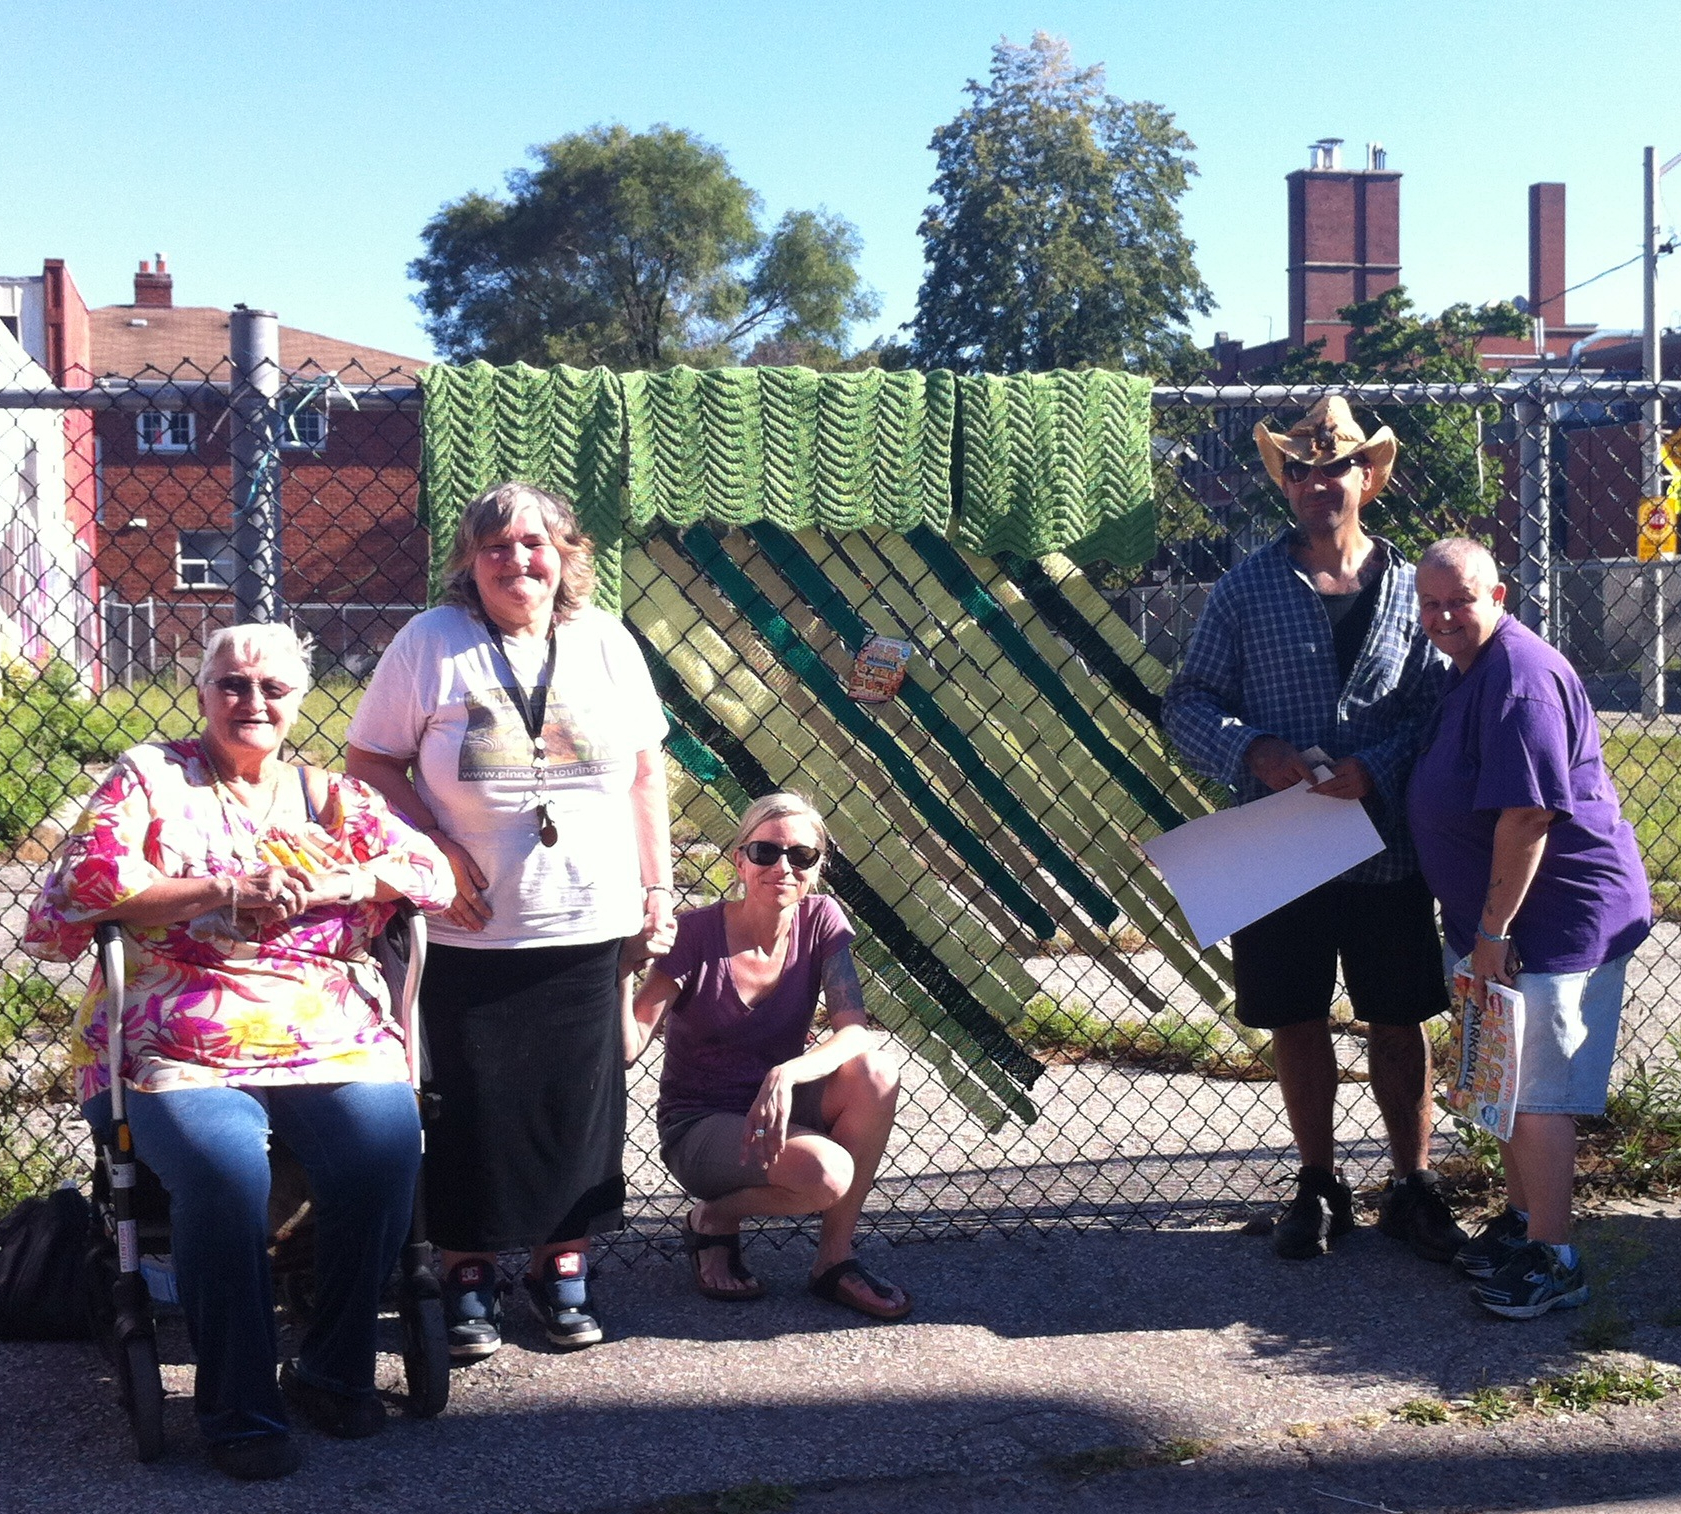 colour photo of smiling group of people standing outside against fence with knitted blanket hung on it